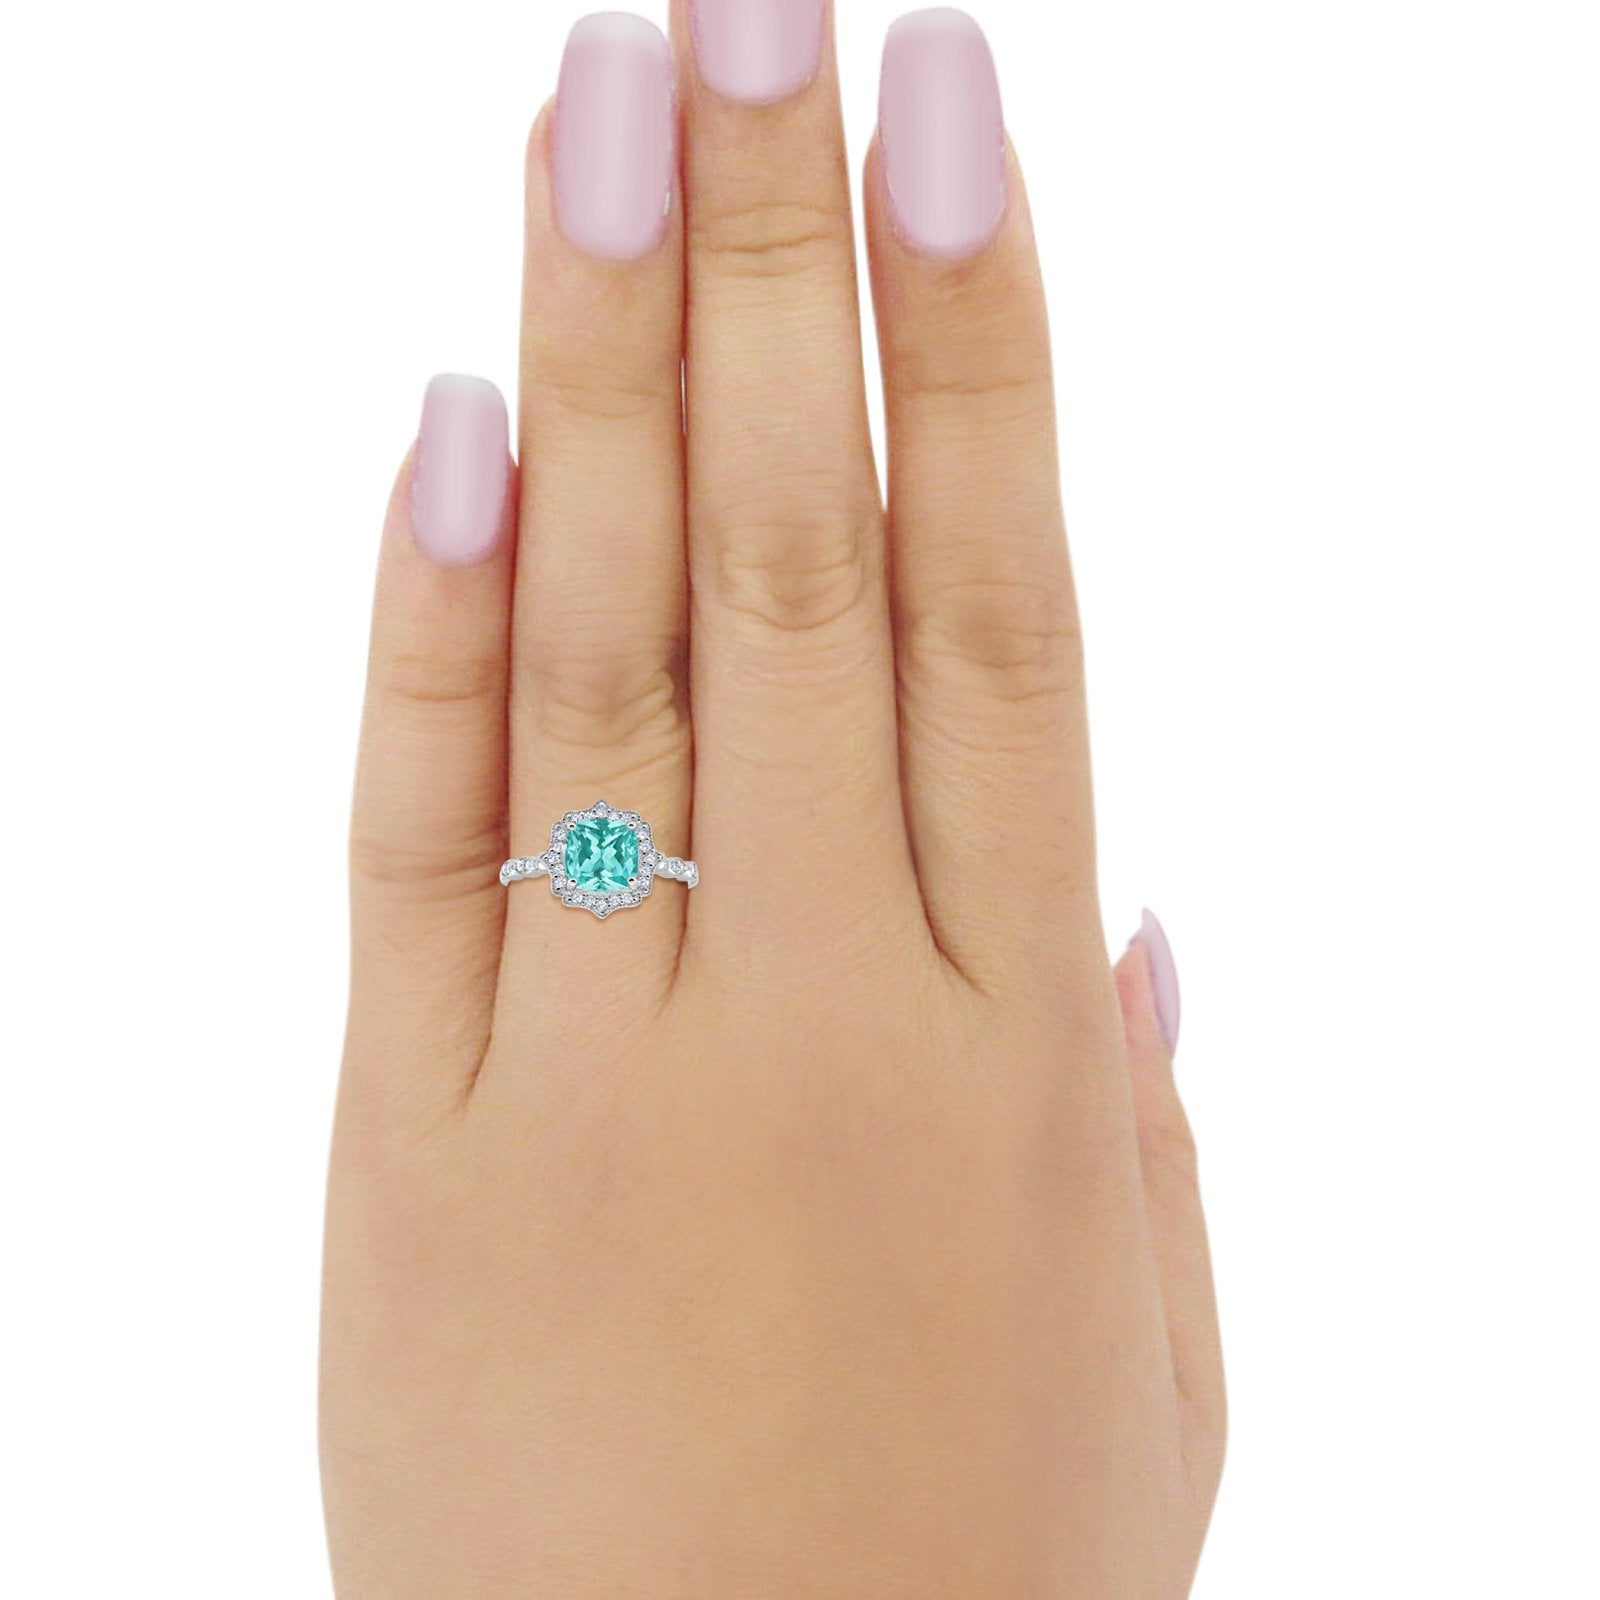 Halo Art Deco Engagement Ring Cushion Simulated Paraiba Tourmaline CZ 925 Sterling Silver